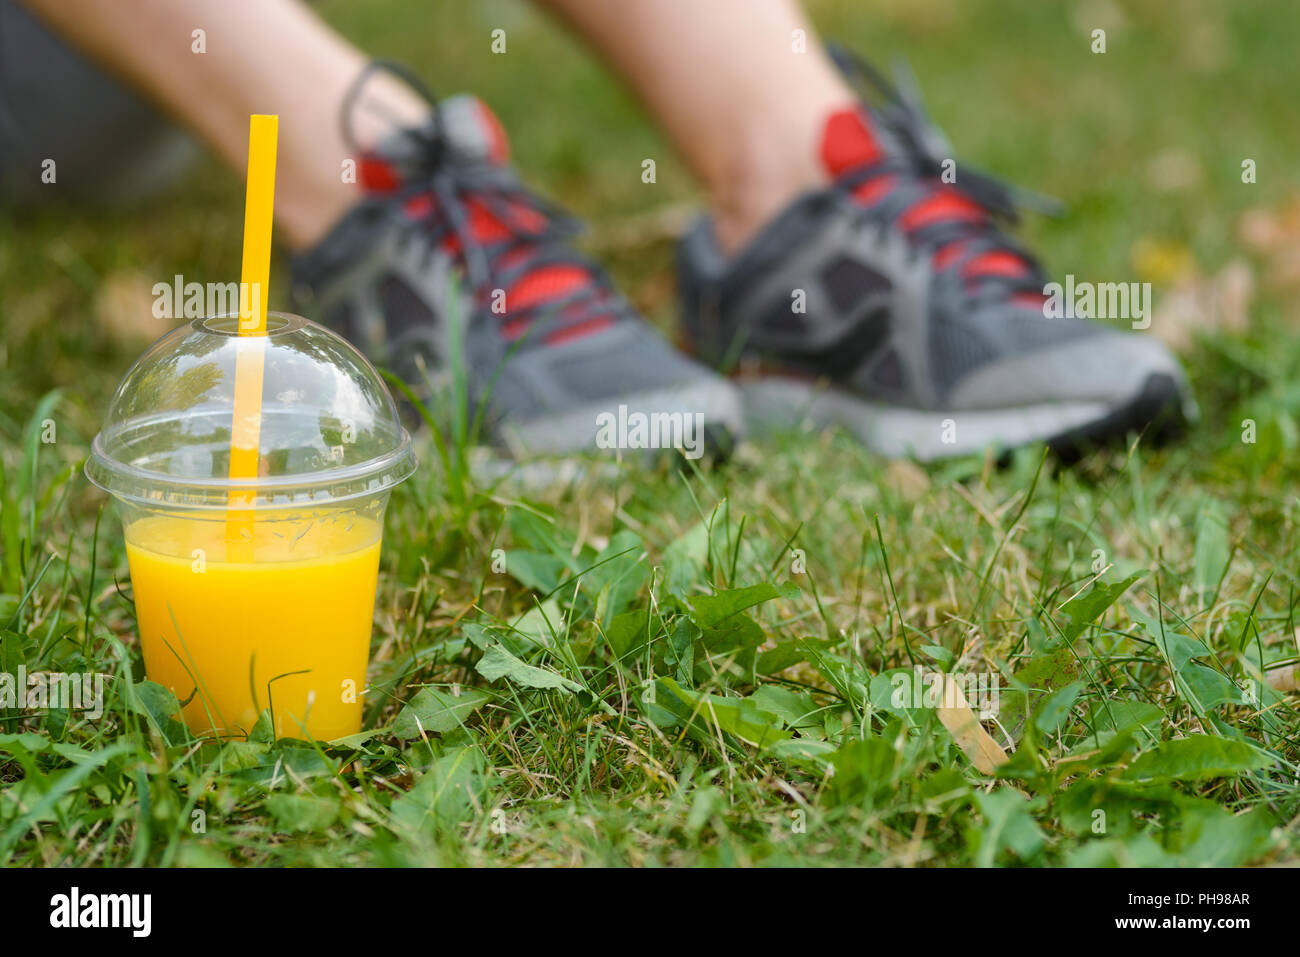 Male athlet takes a break - Stock Image